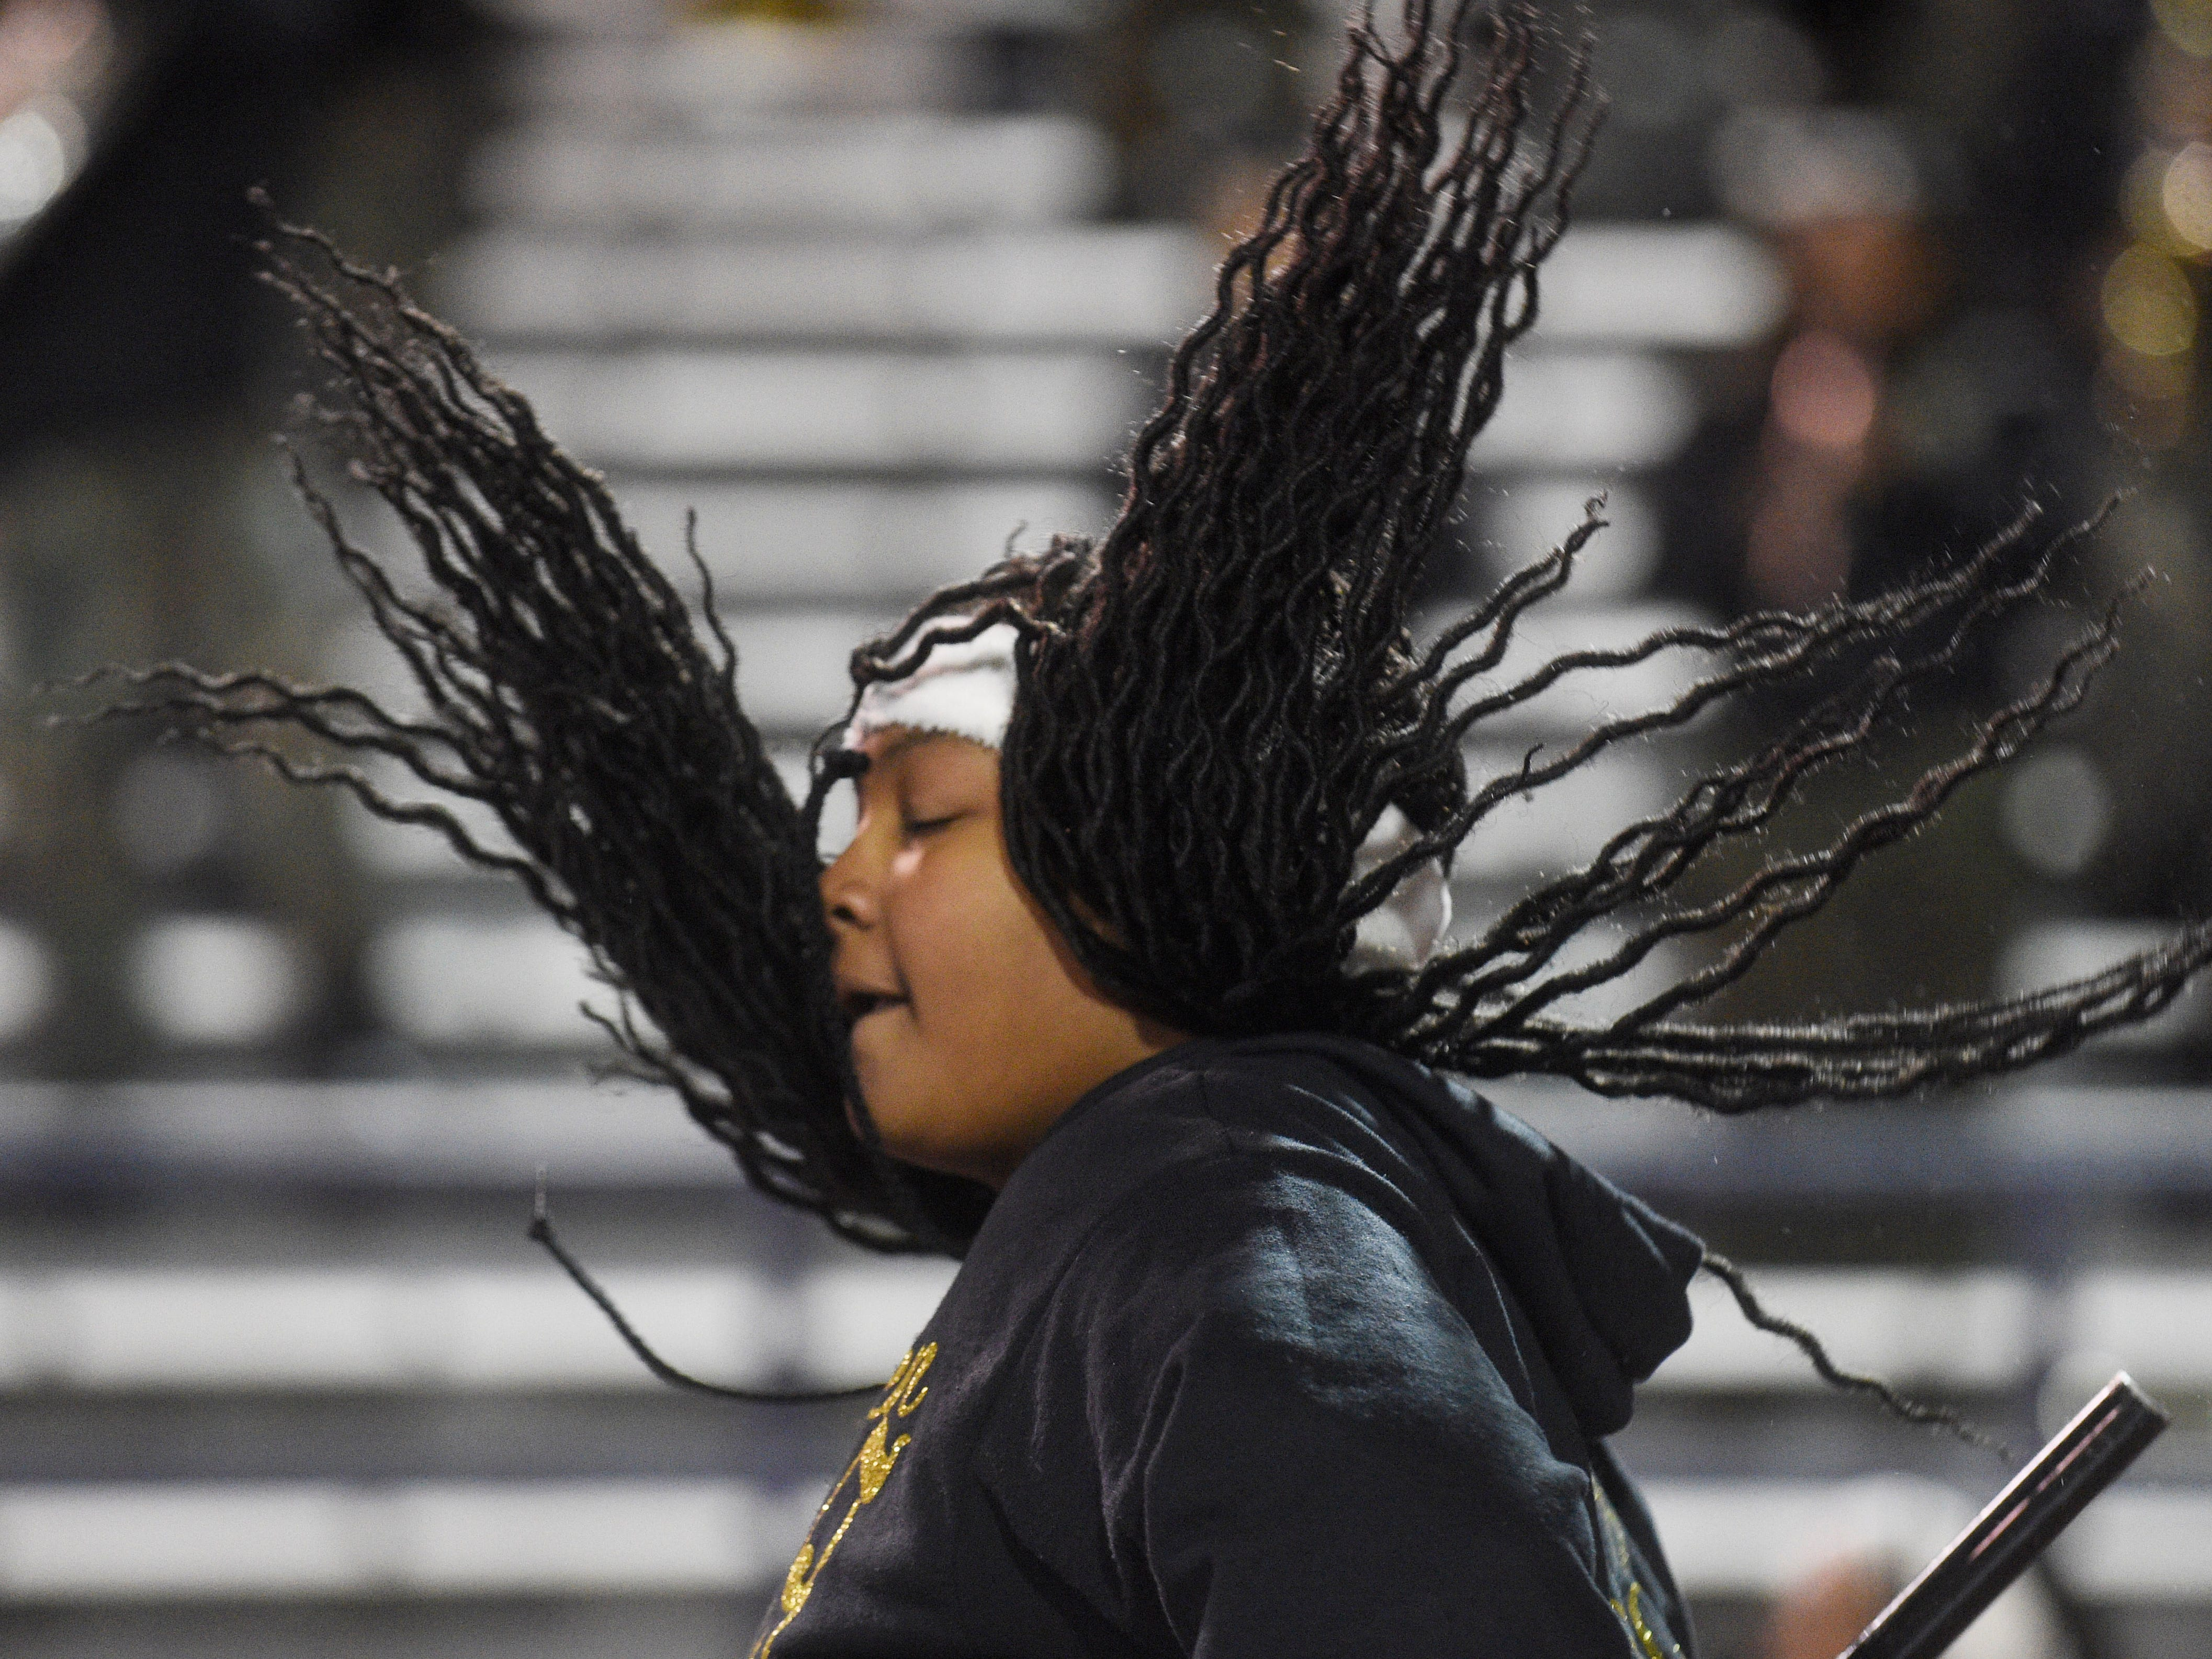 A Whitehaven flag twirler's hair goes flying at the Class 6A BlueCross Bowl state championship at Tennessee Tech's Tucker Stadium in Cookeville, Tenn., on Thursday, Nov. 29, 2018.